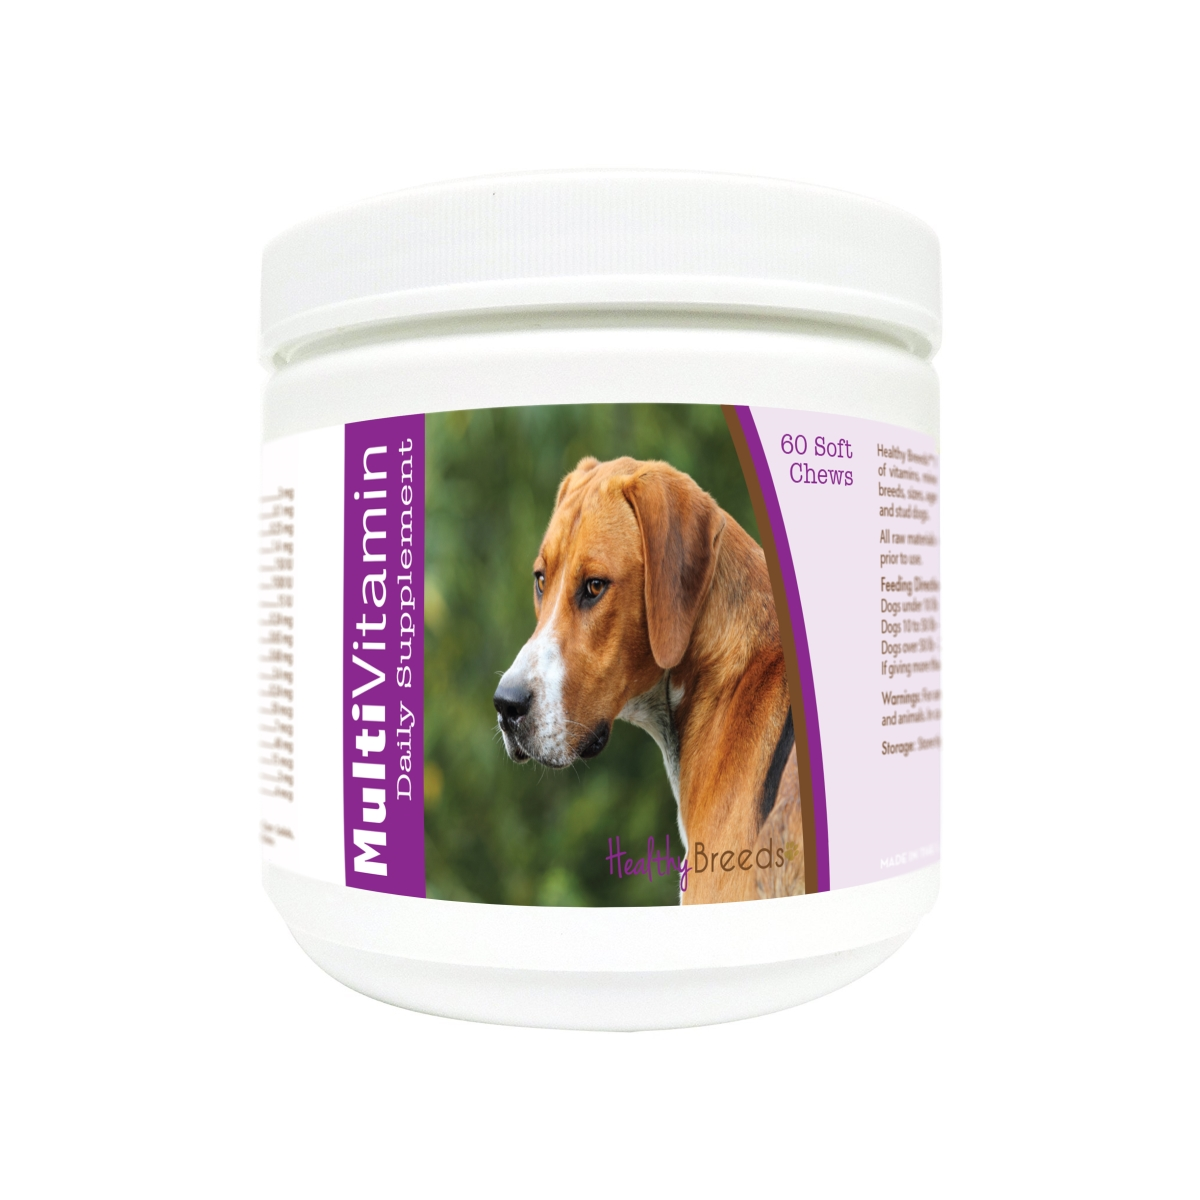 Healthy Breeds 840235180593 English Foxhound Multi-Vitamin Soft Chews - 60 Count